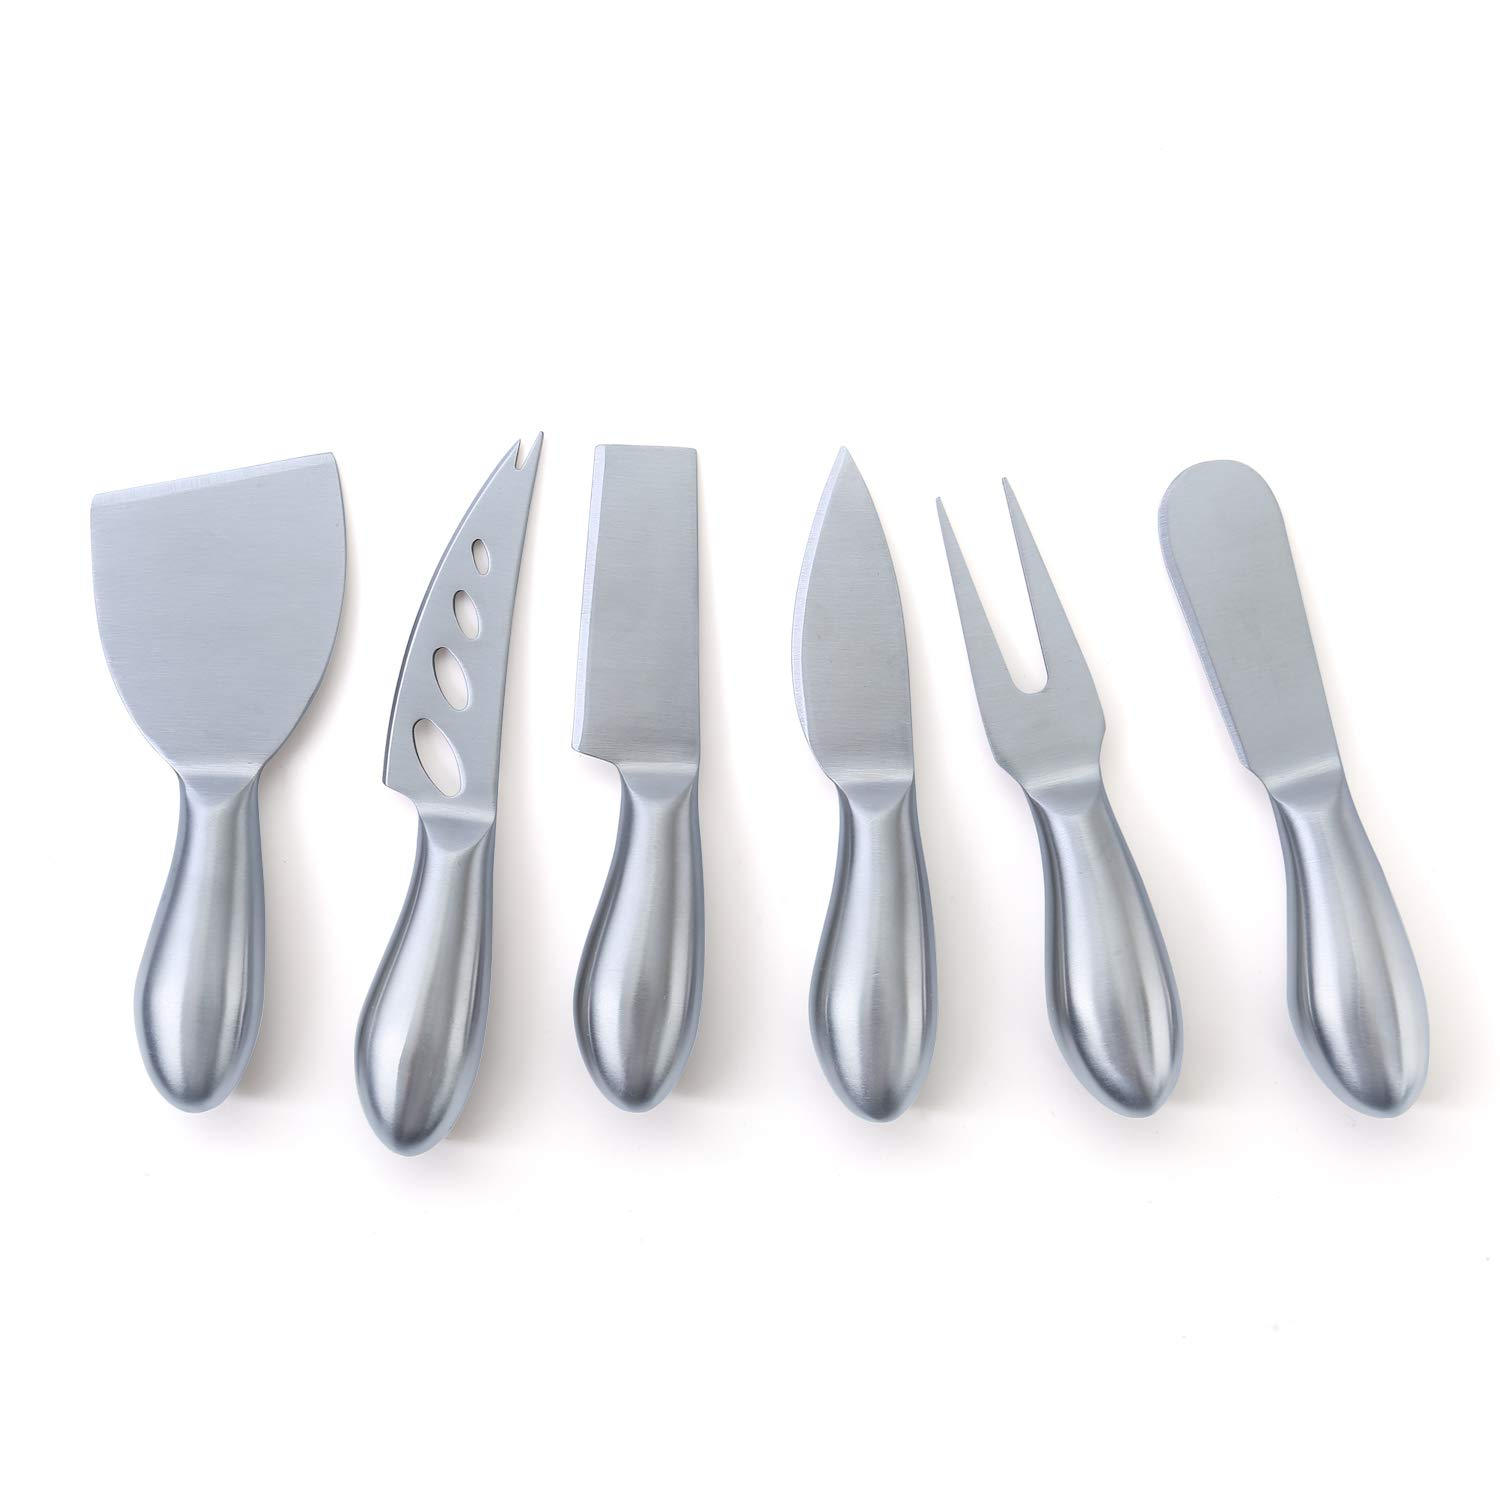 High Quality Cheese Knife Set is Gorgeous!